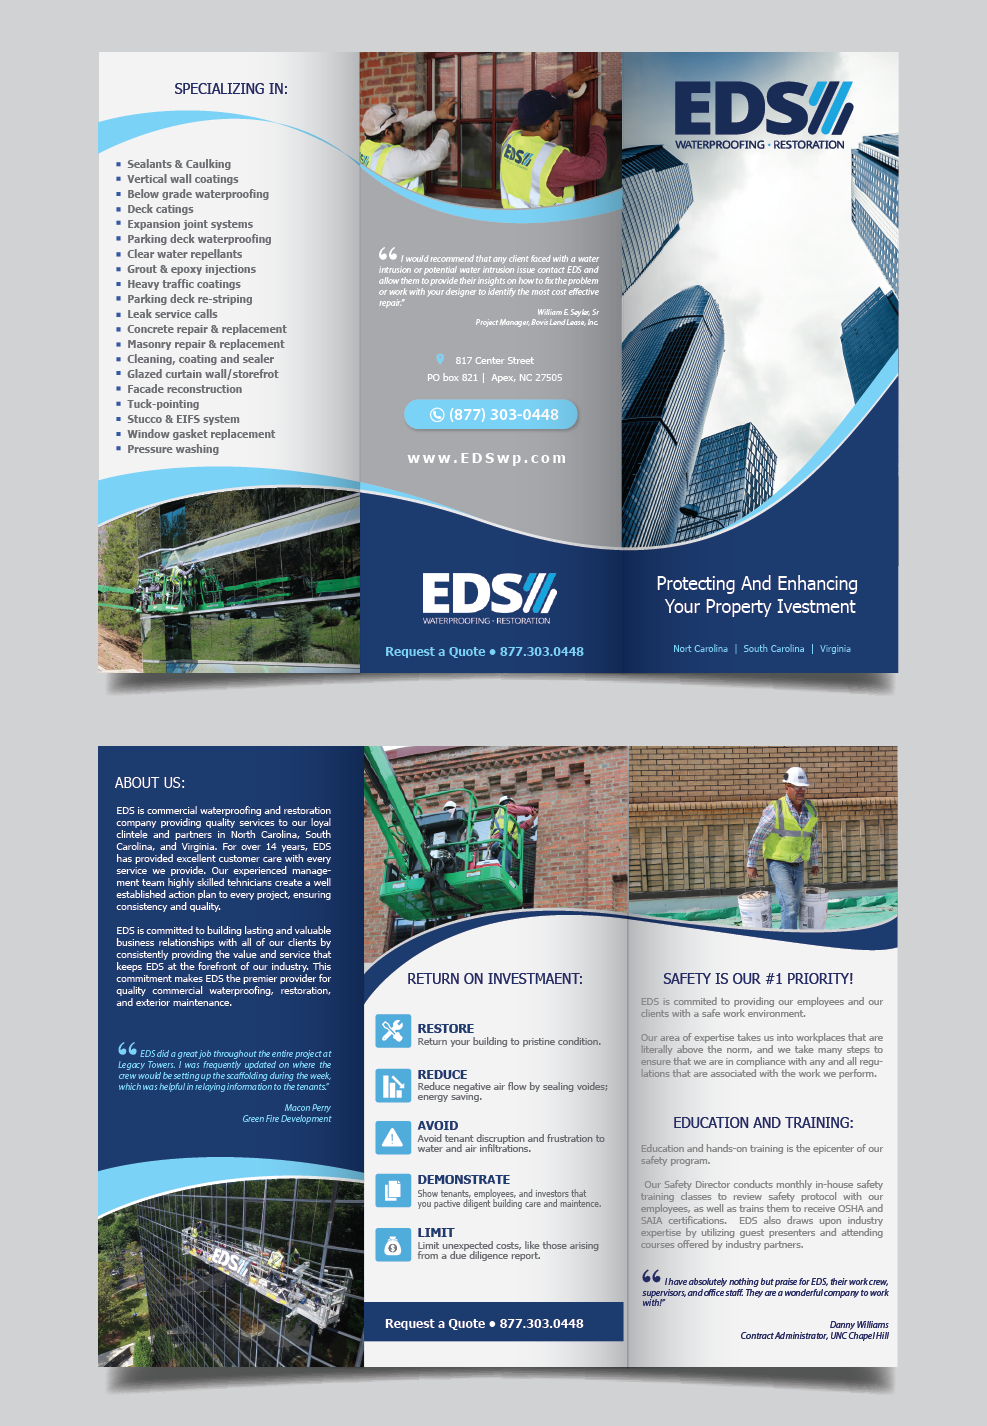 Modern Professional Flyer Design For A Company By Alex989 Design 15732893